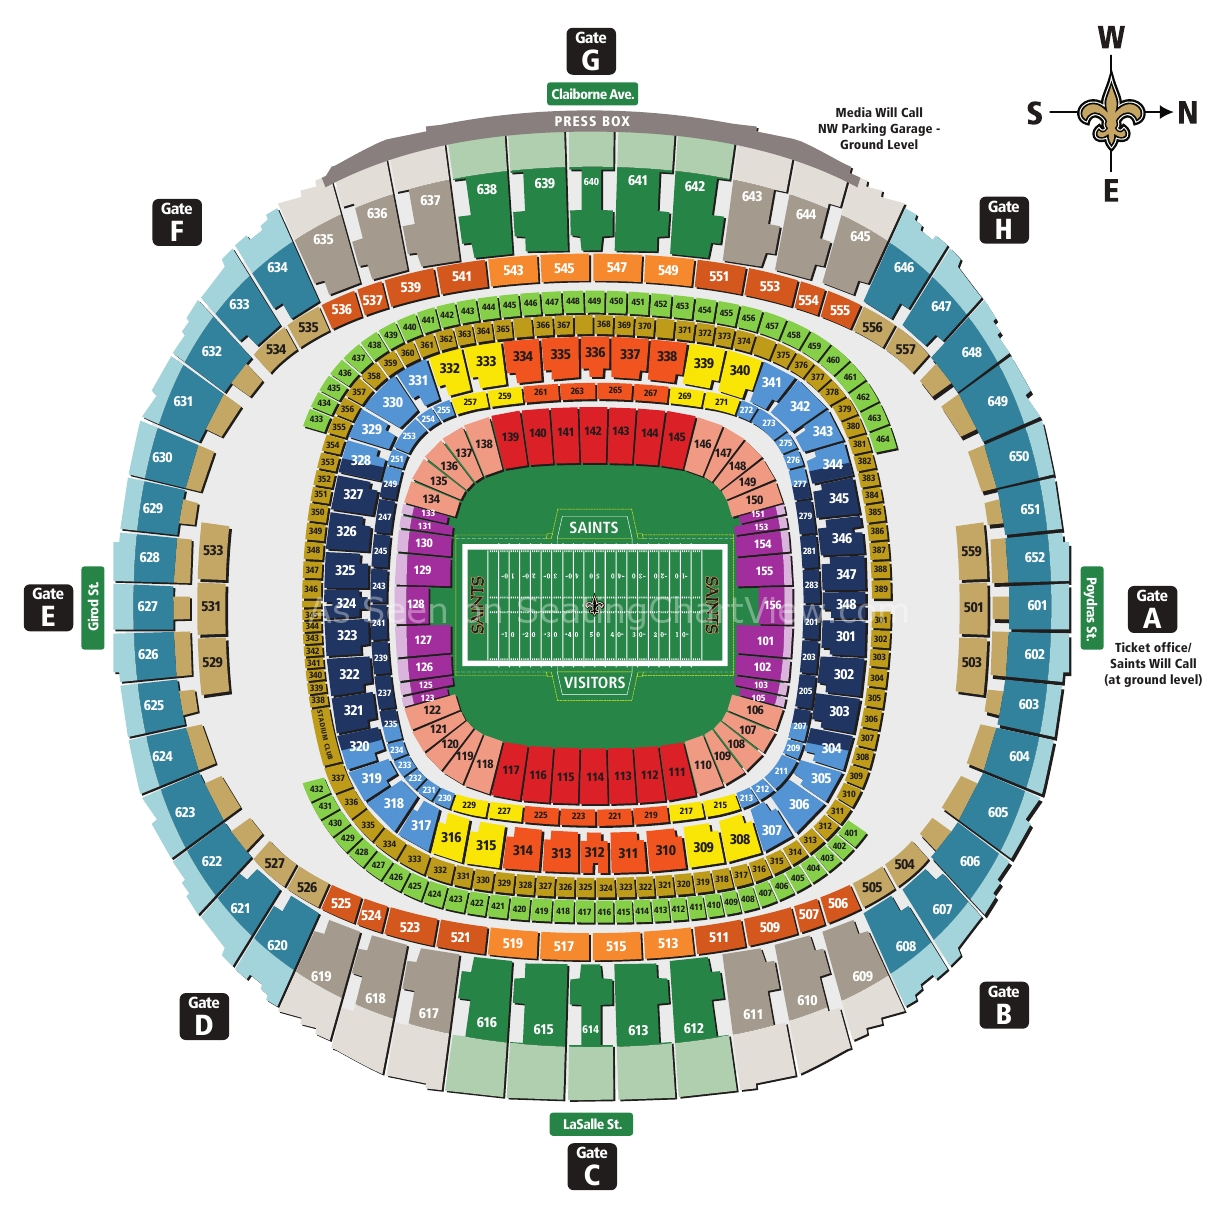 Mercedes-Benz Superdome, New Orleans La | Seating Chart View inside Mercedes Benz Stadium Super Bowl Seating Chart